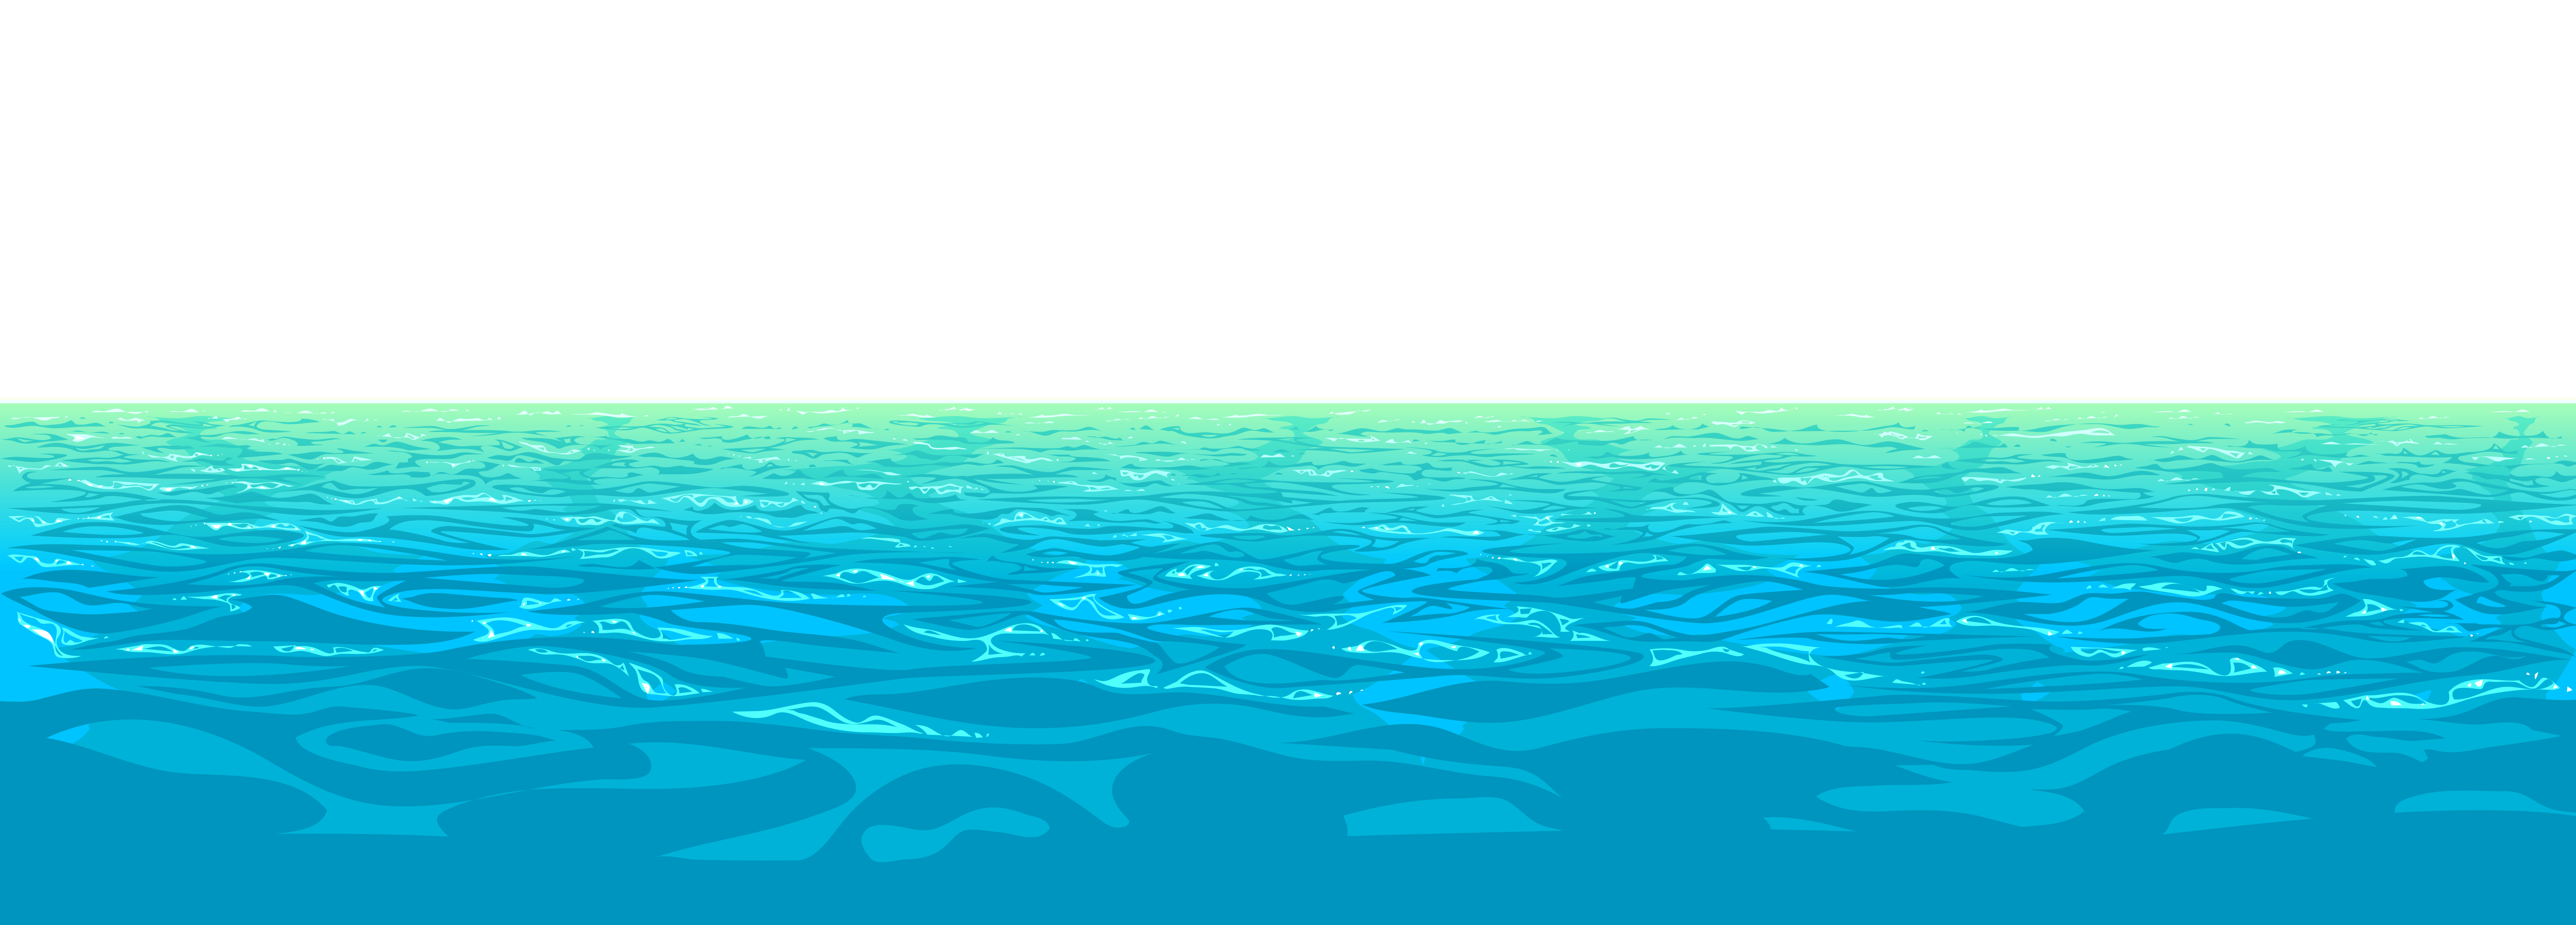 Ocean clipart ocean bottom.  collection of transparent